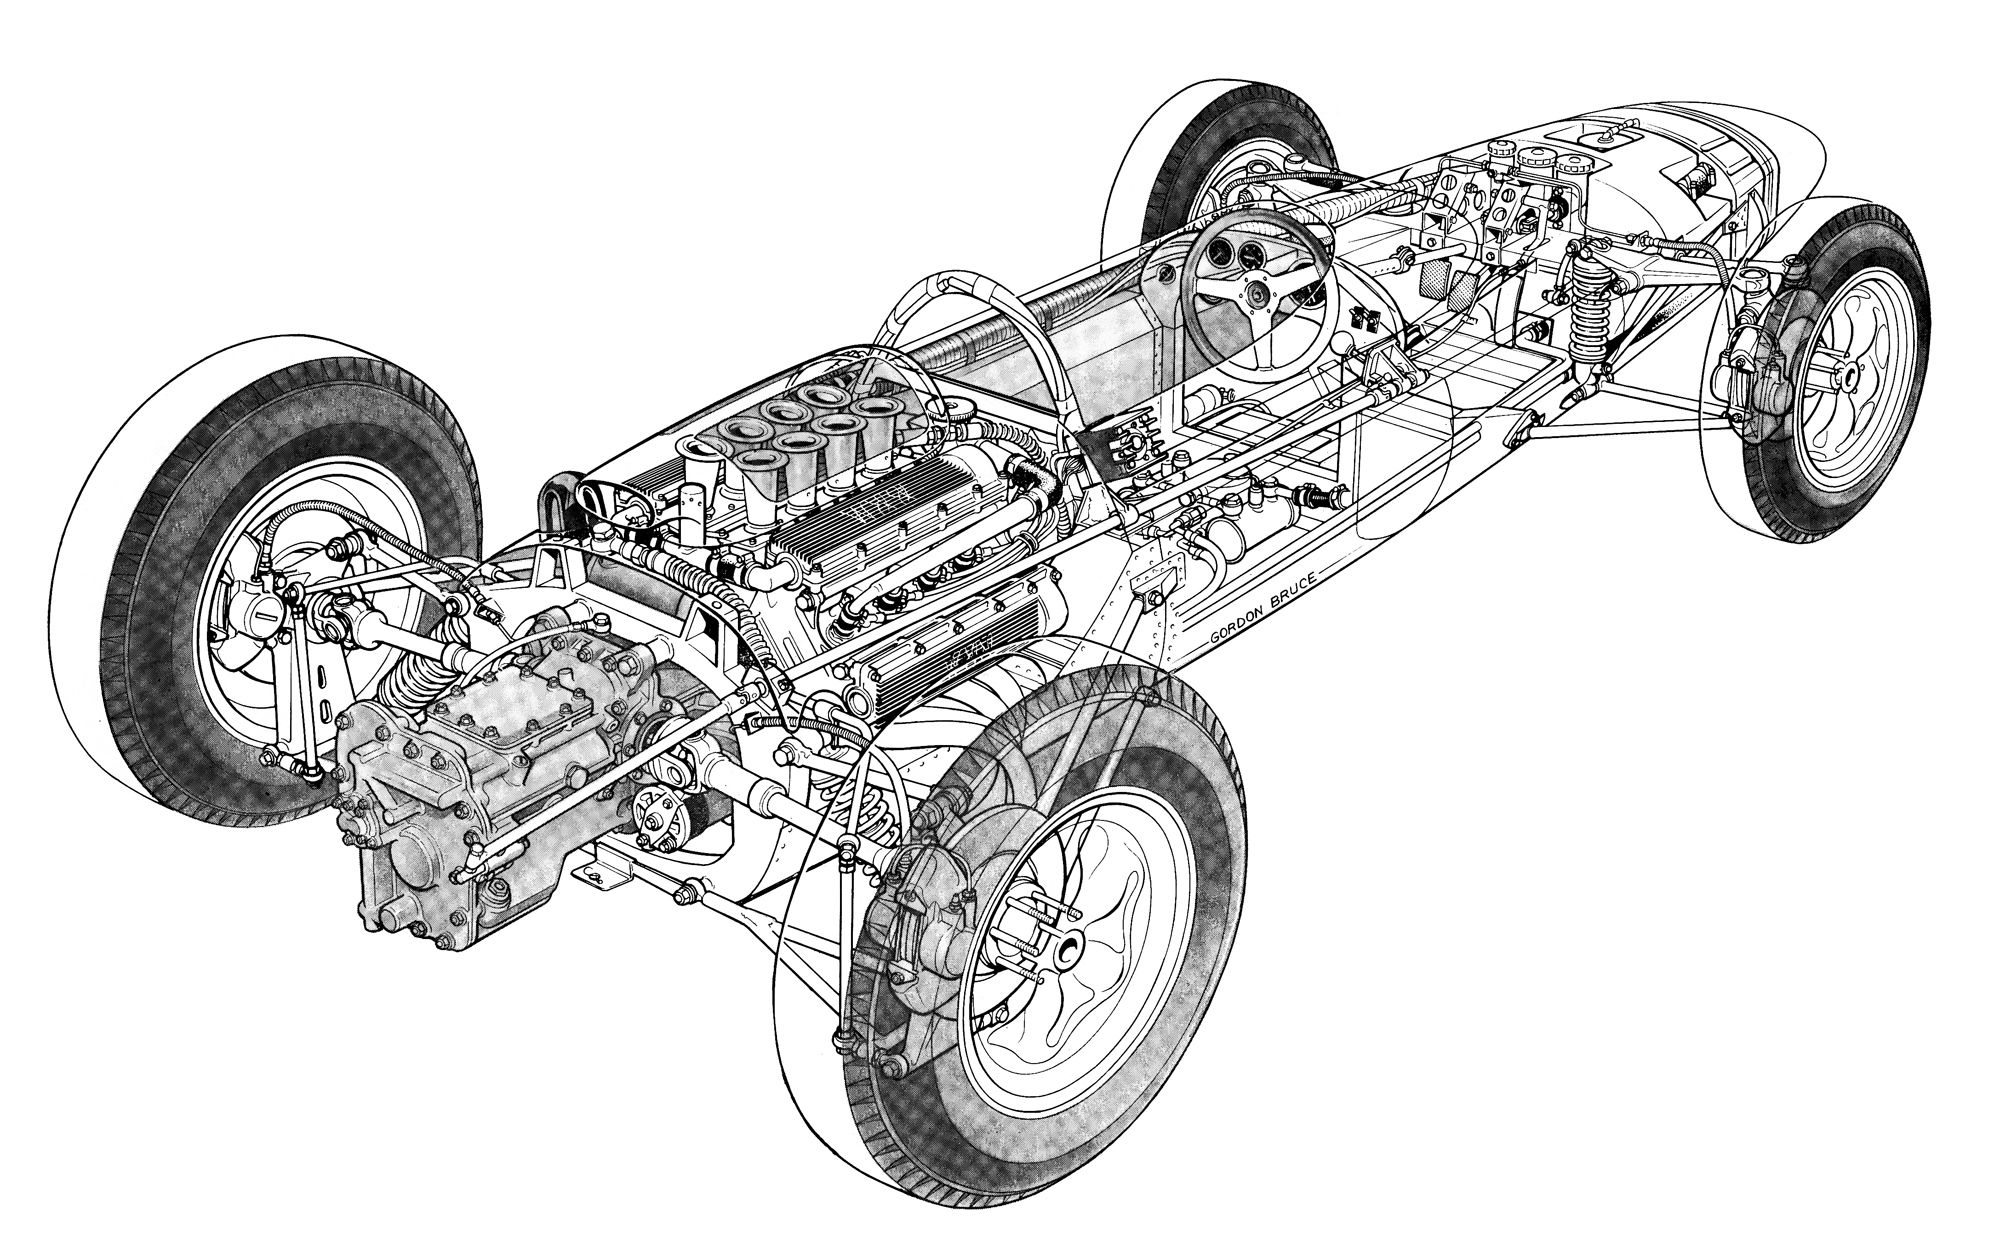 Lotus With Brm Engine By Gordon Bruce